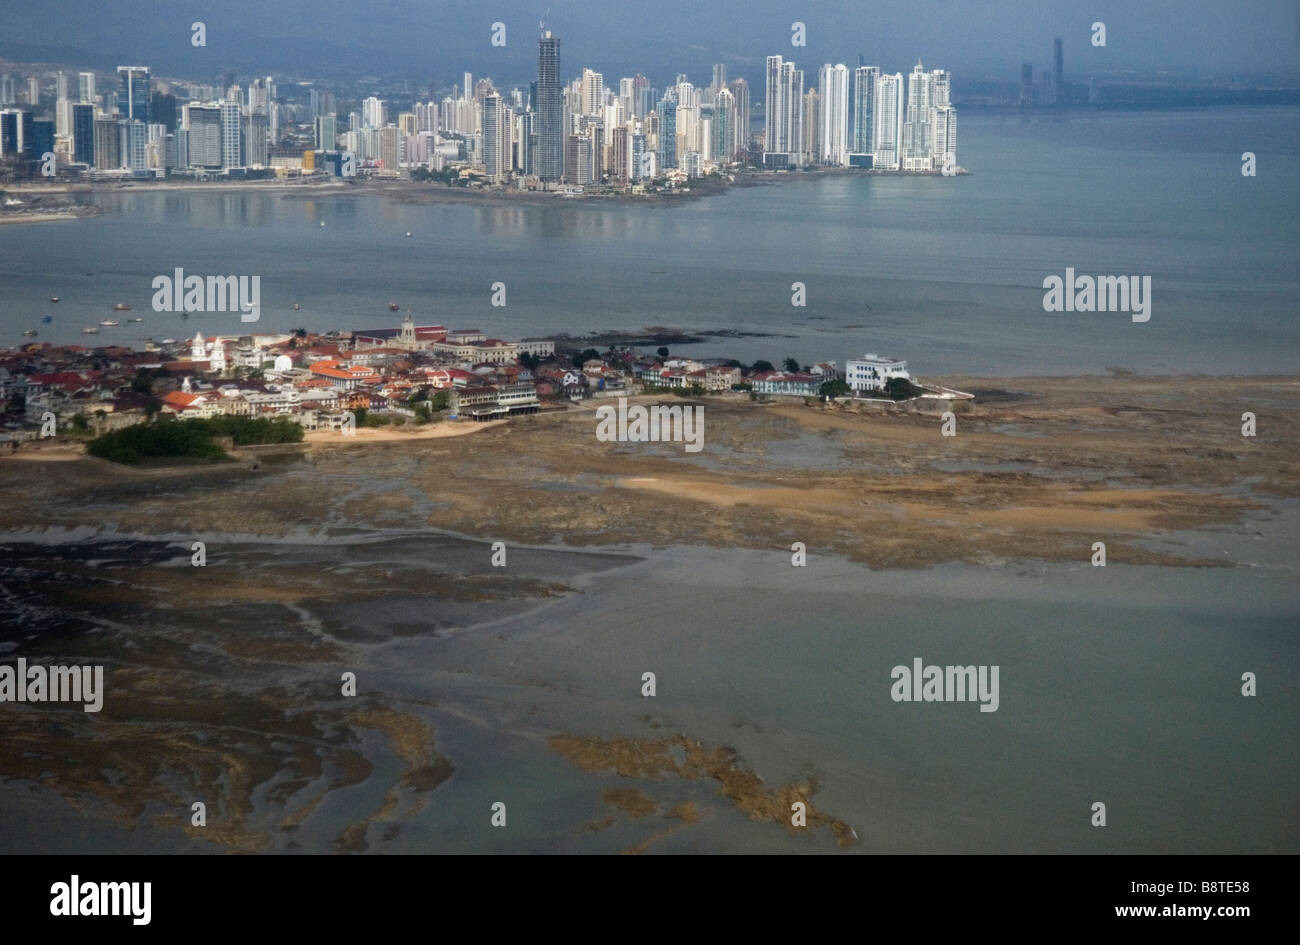 Panama City skyline with the Casco Antiguo old town in the foreground - Stock Image